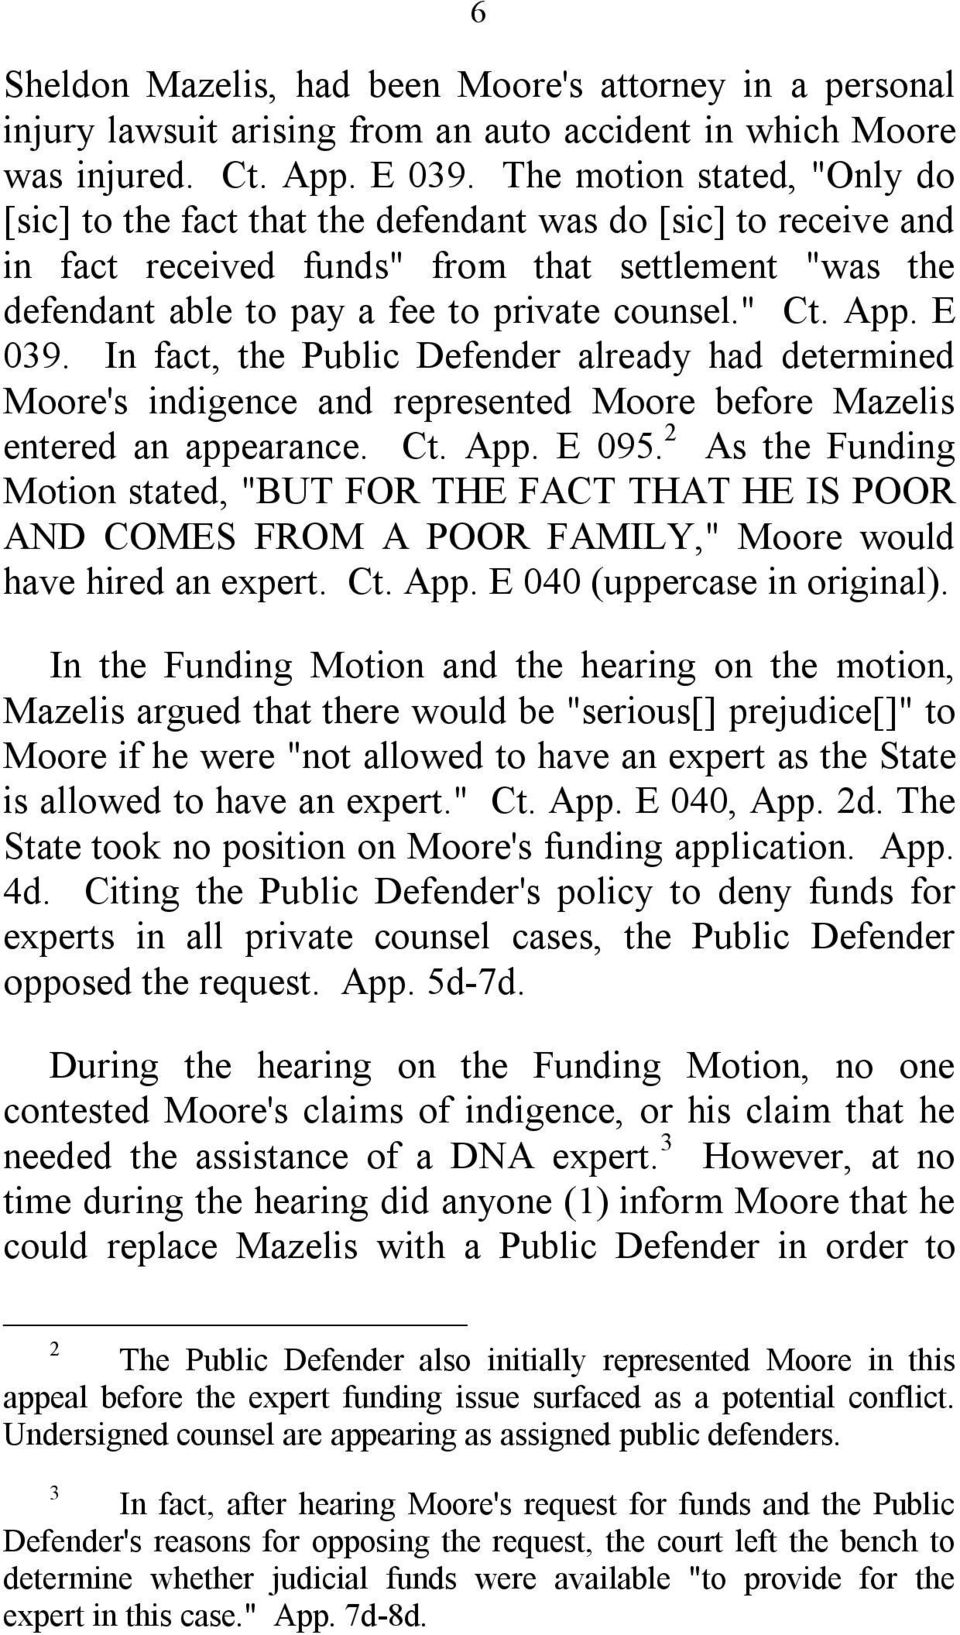 App. E 039. In fact, the Public Defender already had determined Moore's indigence and represented Moore before Mazelis entered an appearance. Ct. App. E 095.